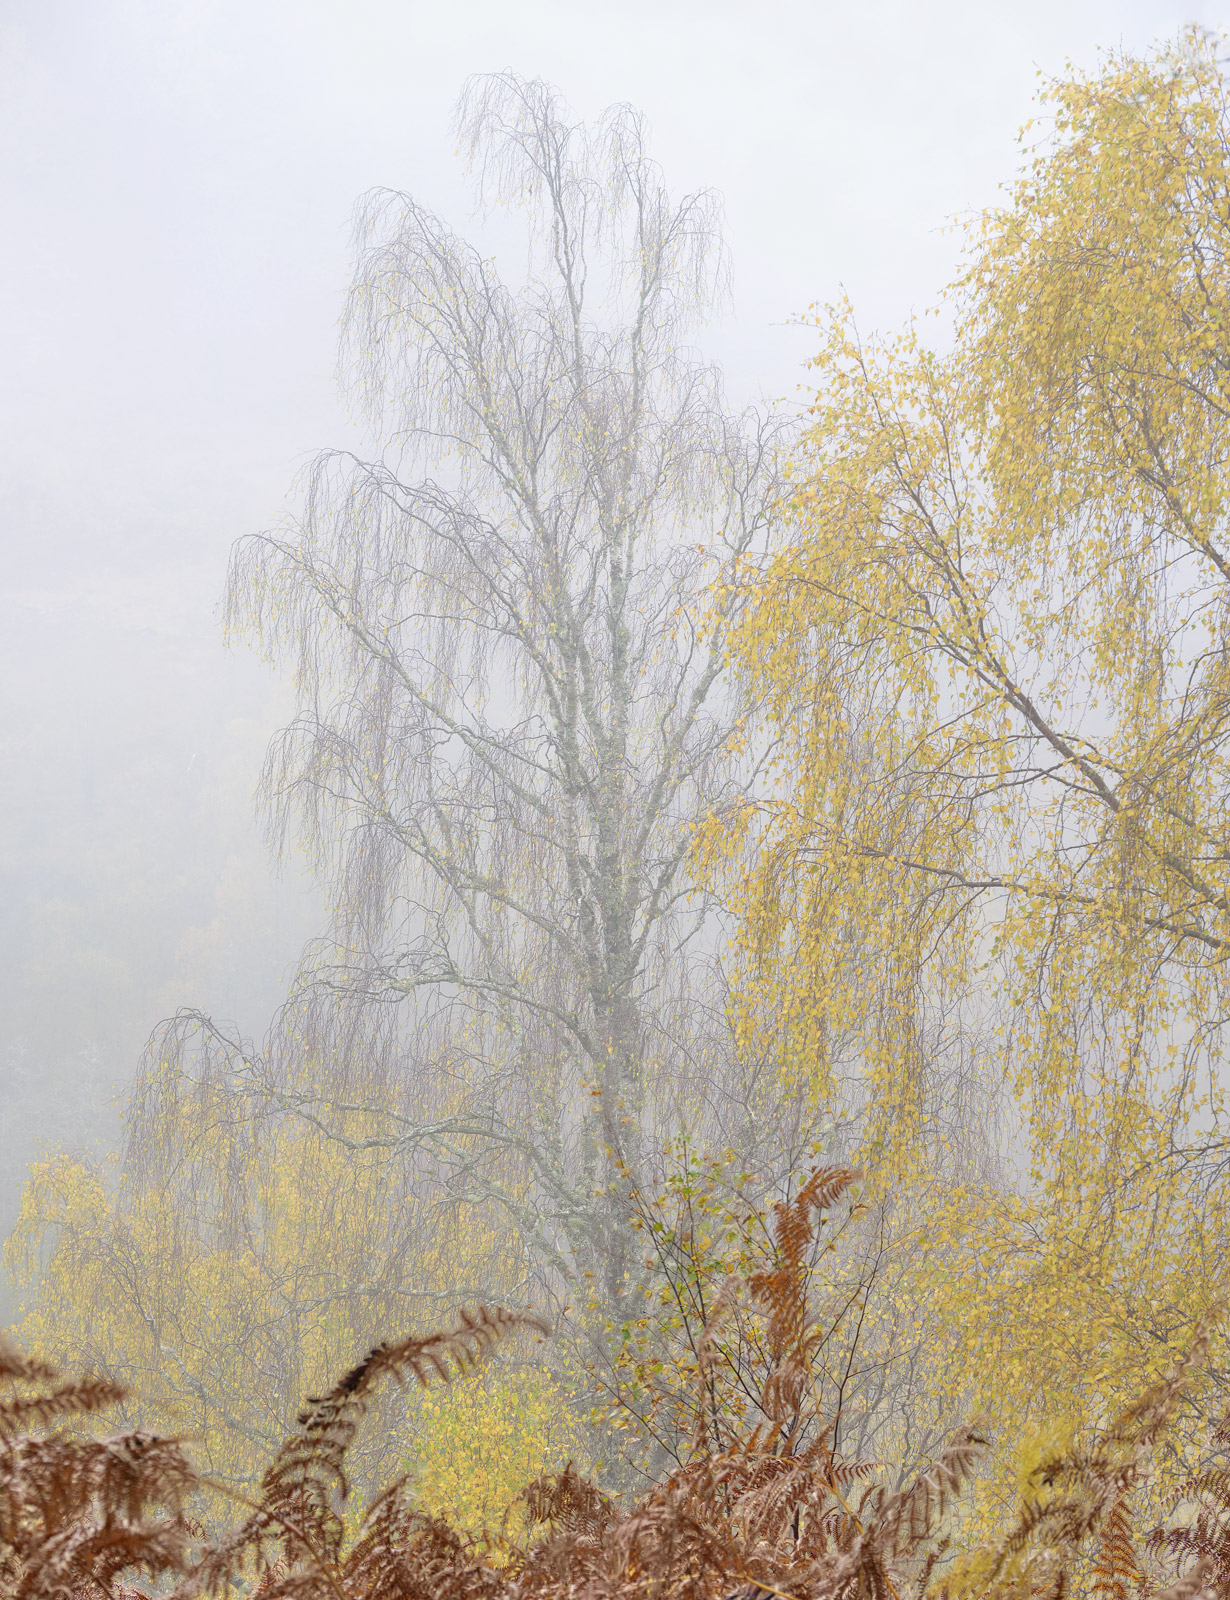 A wonderful soft and nebulous hill mist flowed across the hillside enveloping the birch and bracken covered slopes on which we...